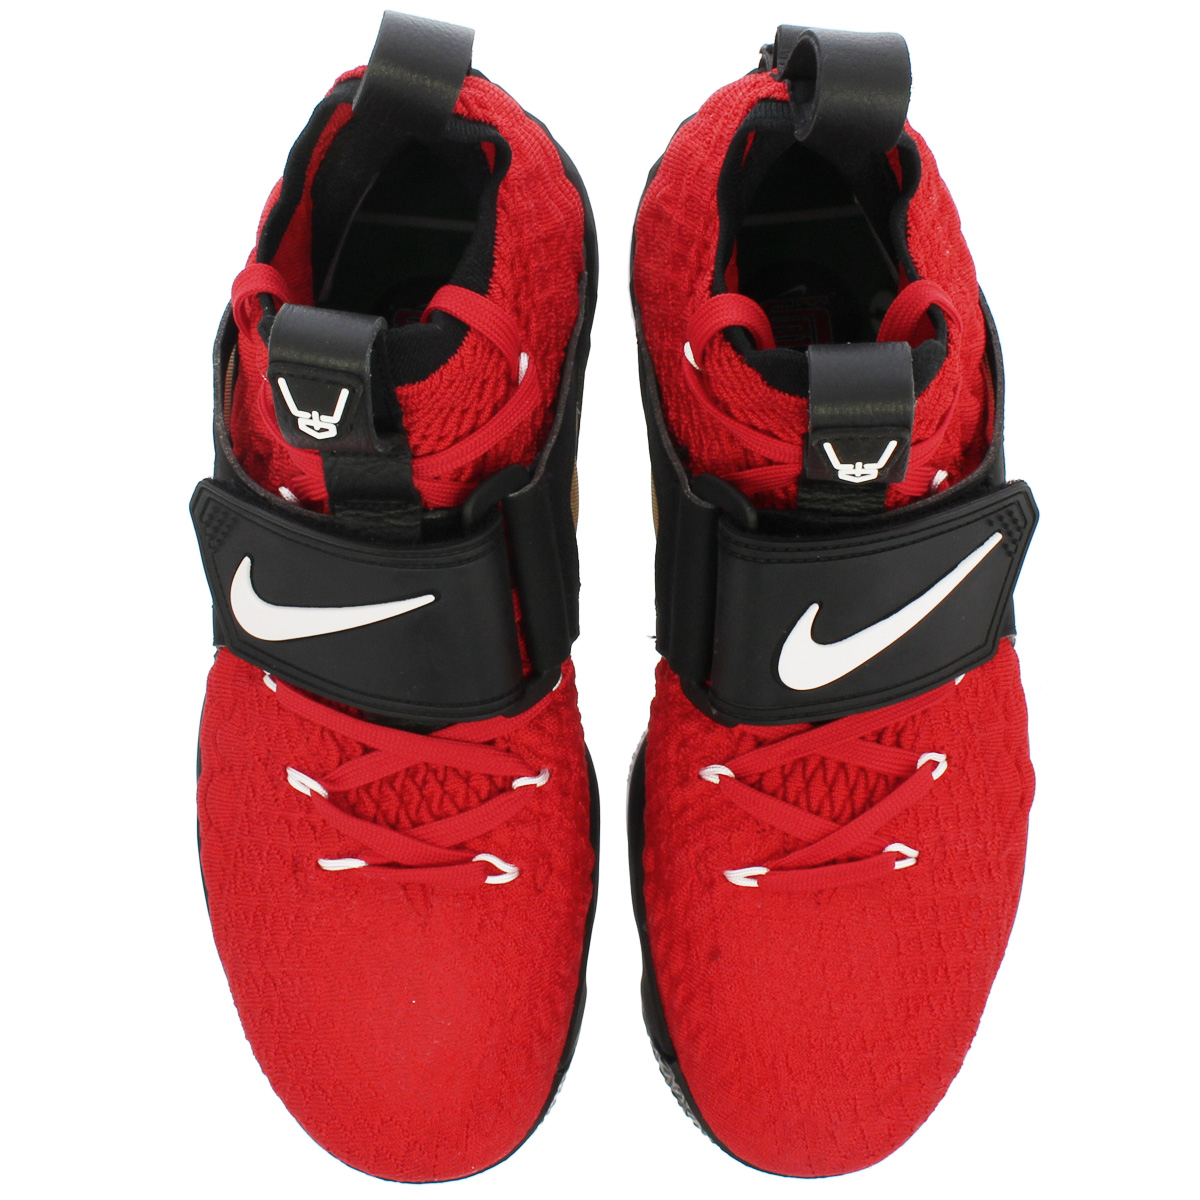 half off 37cf1 ec7c7 NIKE LEBRON 15 Nike Revlon 15 UNIVERSITY RED/WHITE/BLACK ao9144-600